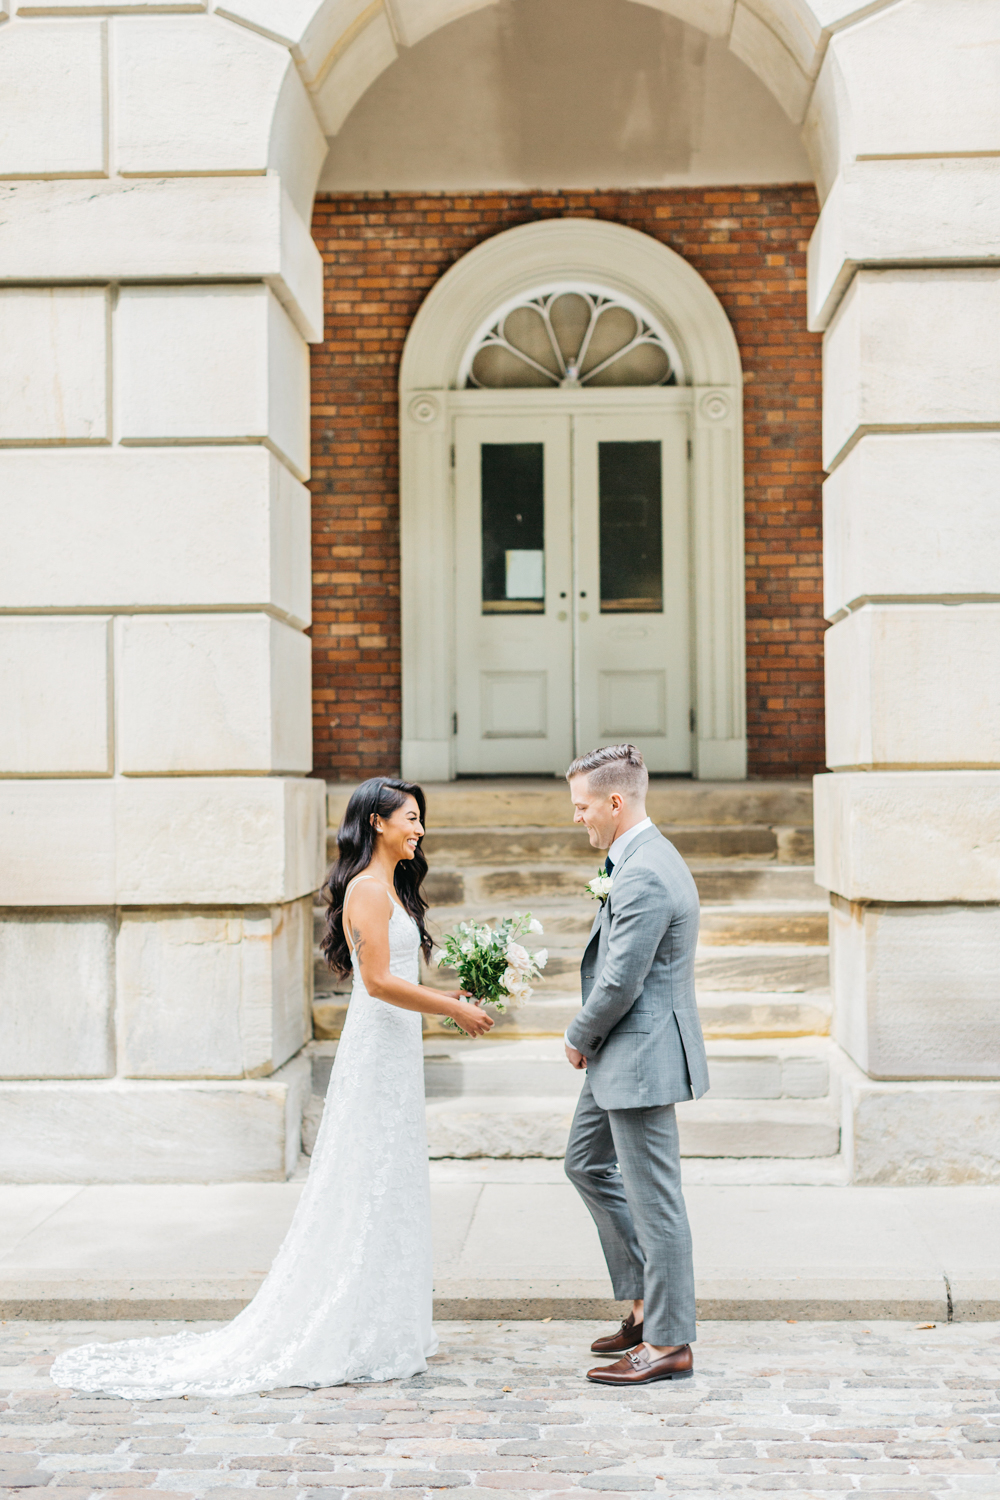 First look with bride and groom at Osgoode hall